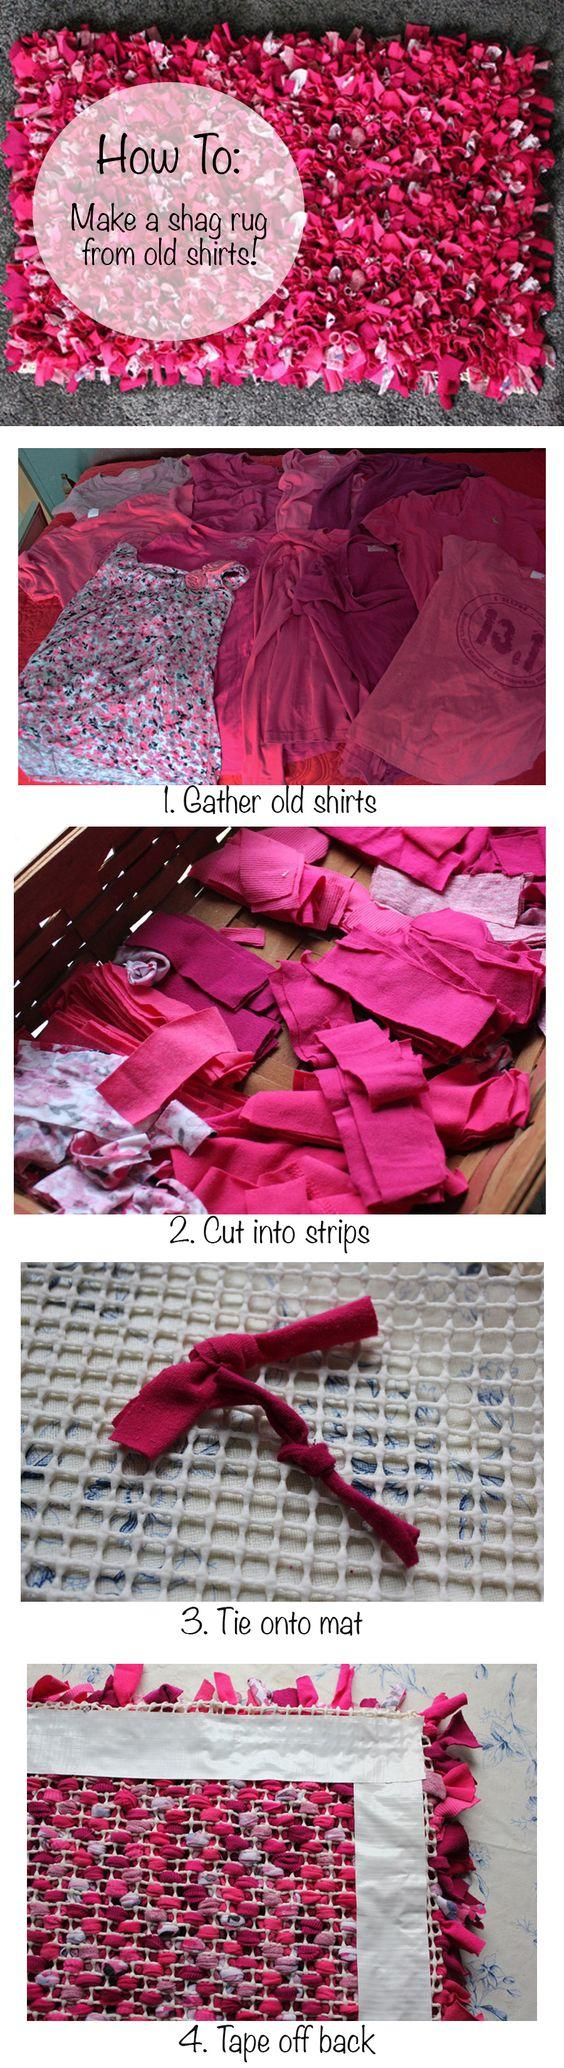 Home office design brilliant ideas for diy rug ra for How to make rugs out of old t shirts